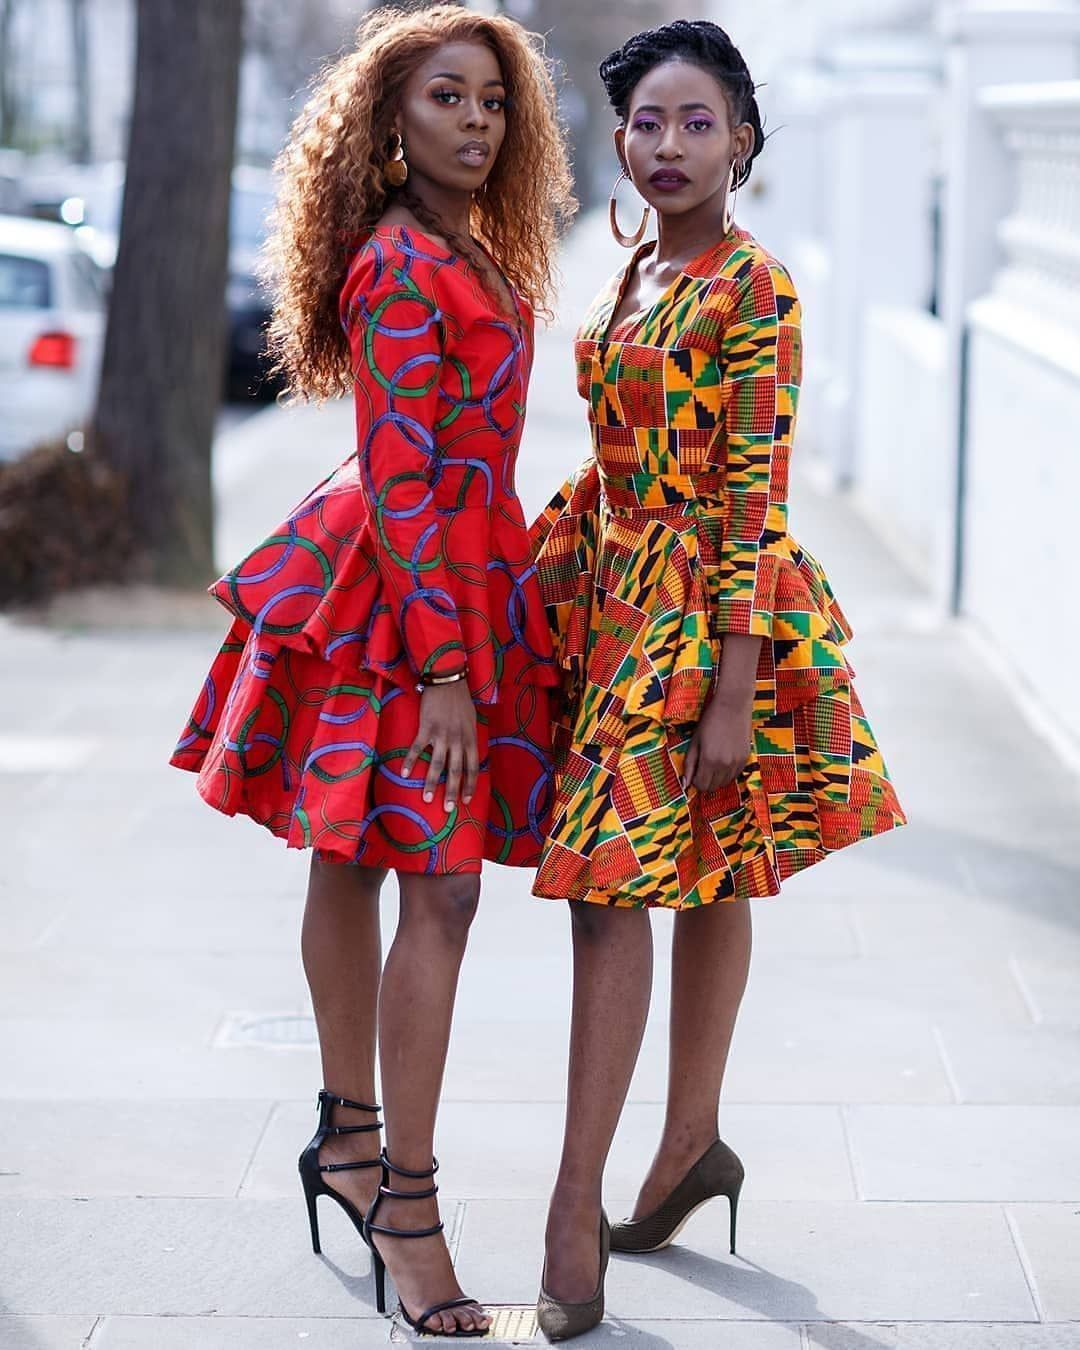 Your style speaks for you without you saying a word. Lovely dresses from @m.a.dkollection new collection. . . • #enthrallingstylesbymon #africanprint  #africanfashion #africaninspired #asoebi #handmadeaccessories #lotd #ootd  #styleinspiration #streetstyle #ankaraprint #africanfashion #blackgirlmagic #ankara #blackowned #stylefiles #afroelle  #styleblog #ankarastil Your style speaks for you without you saying a word. Lovely dresses from @m.a.dkollection new collection. . . • #enthrall #ankarastil